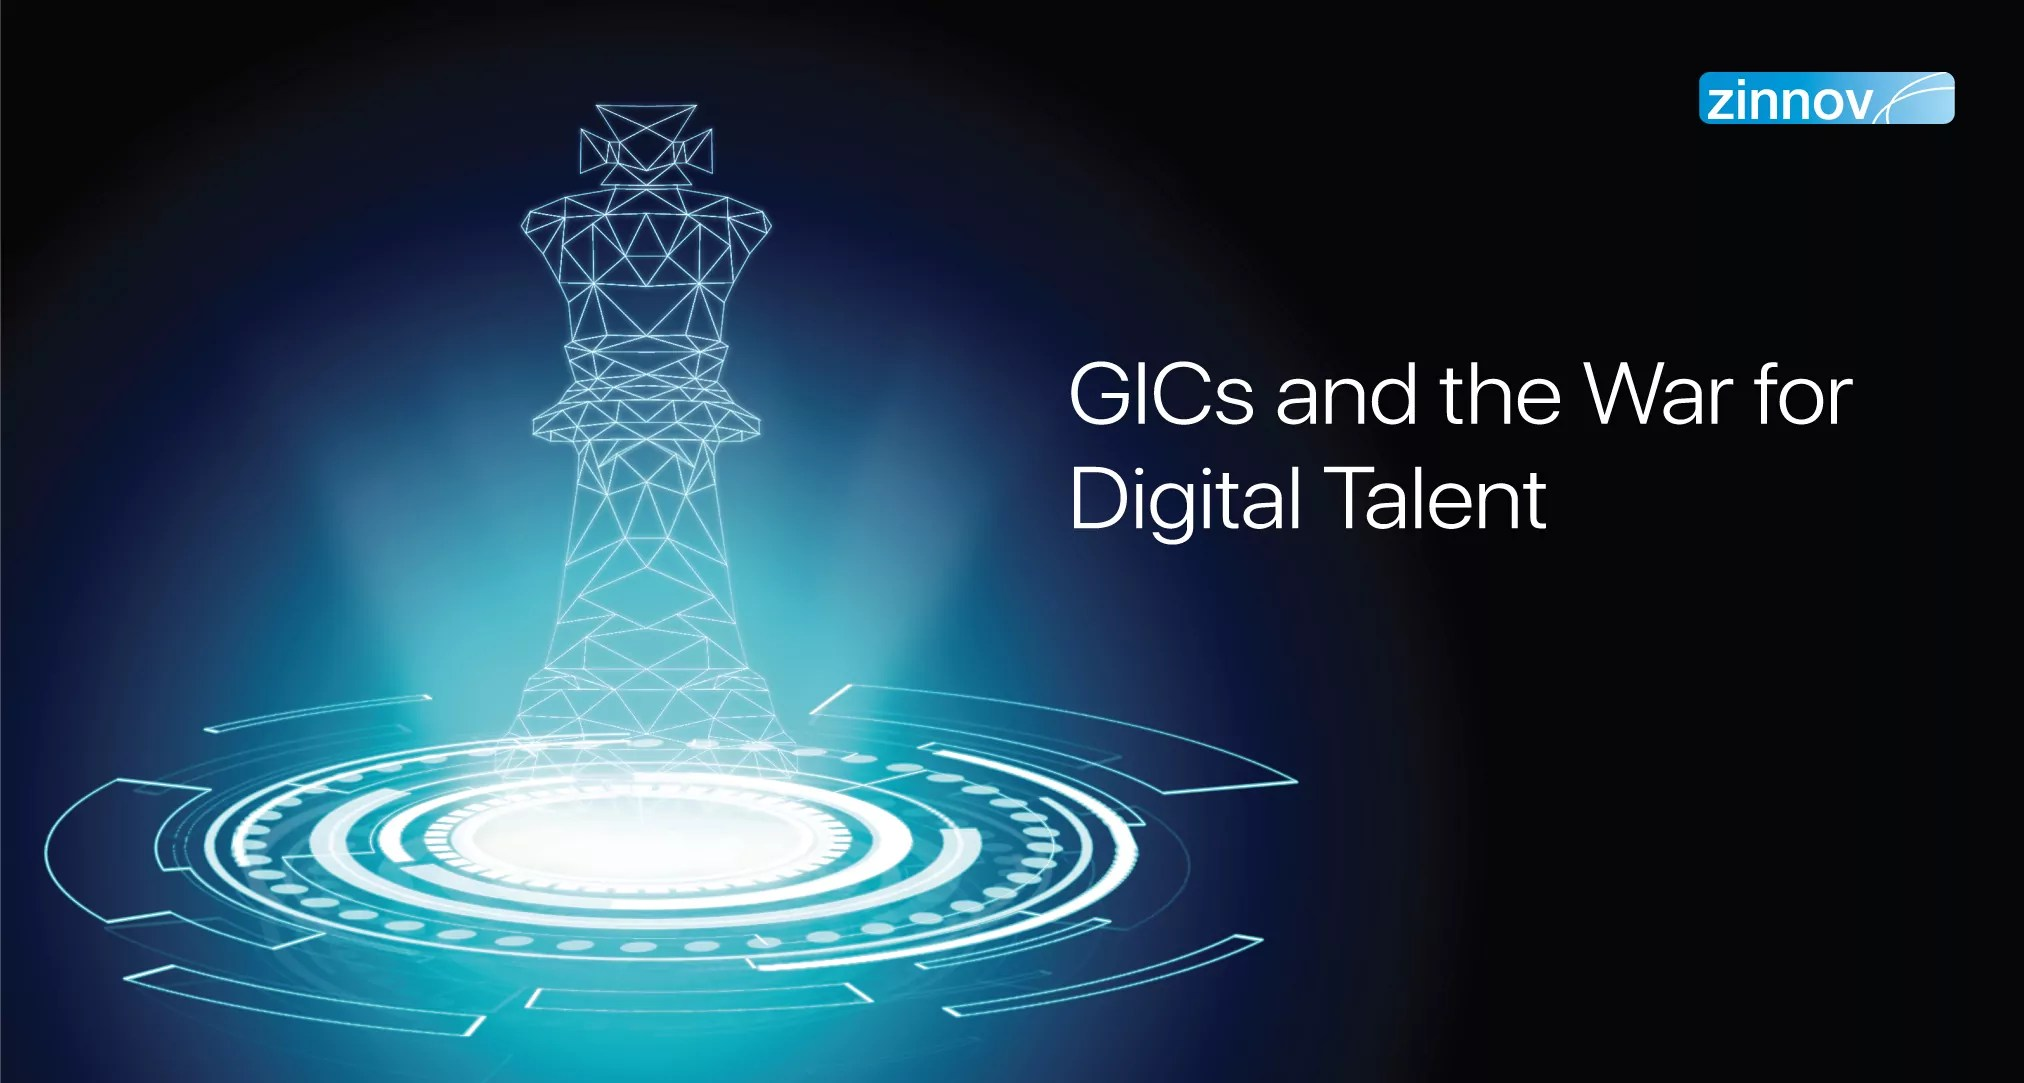 digital talent war